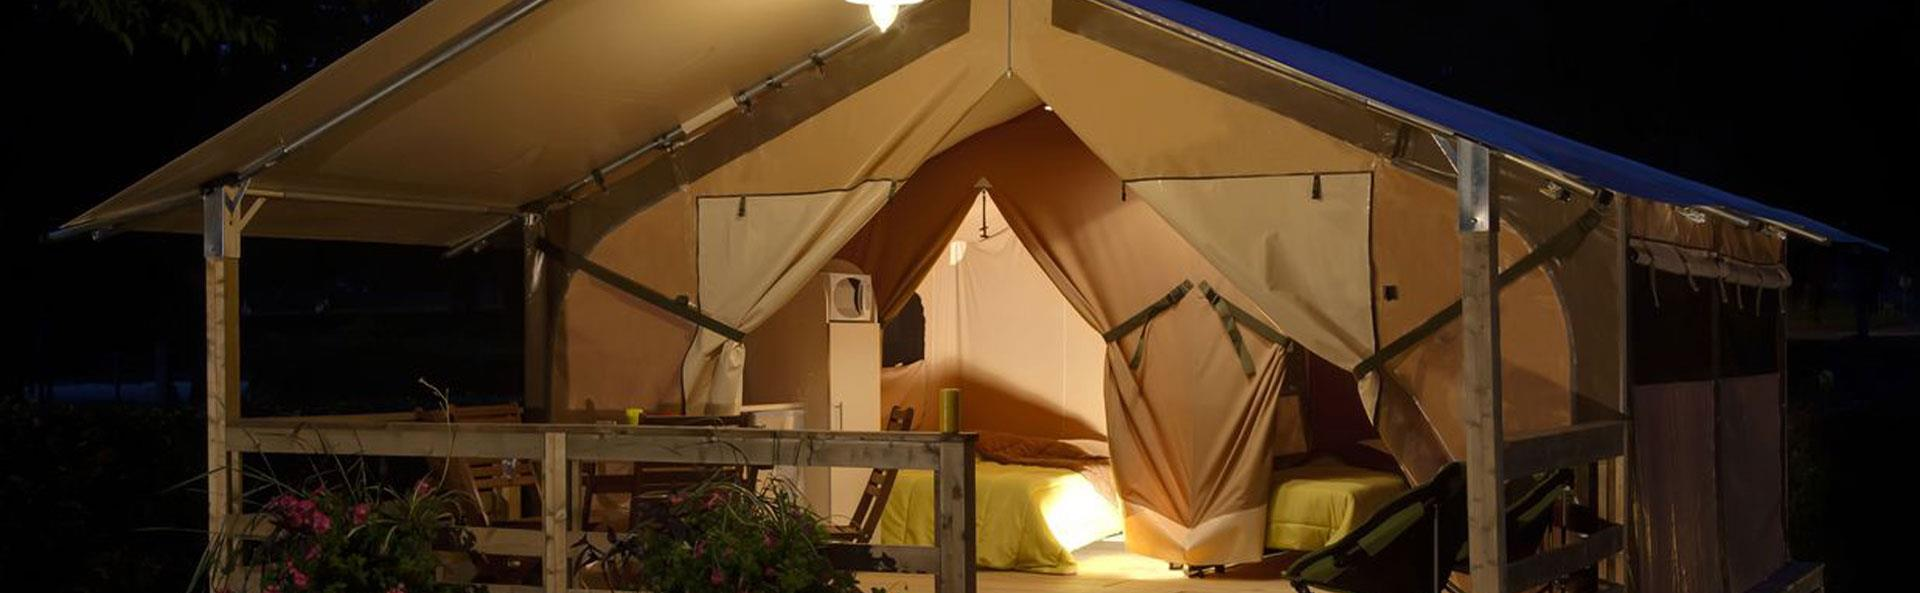 Lot campsite – Lot Evasion: campsite in the Lot between Quercy and Périgord